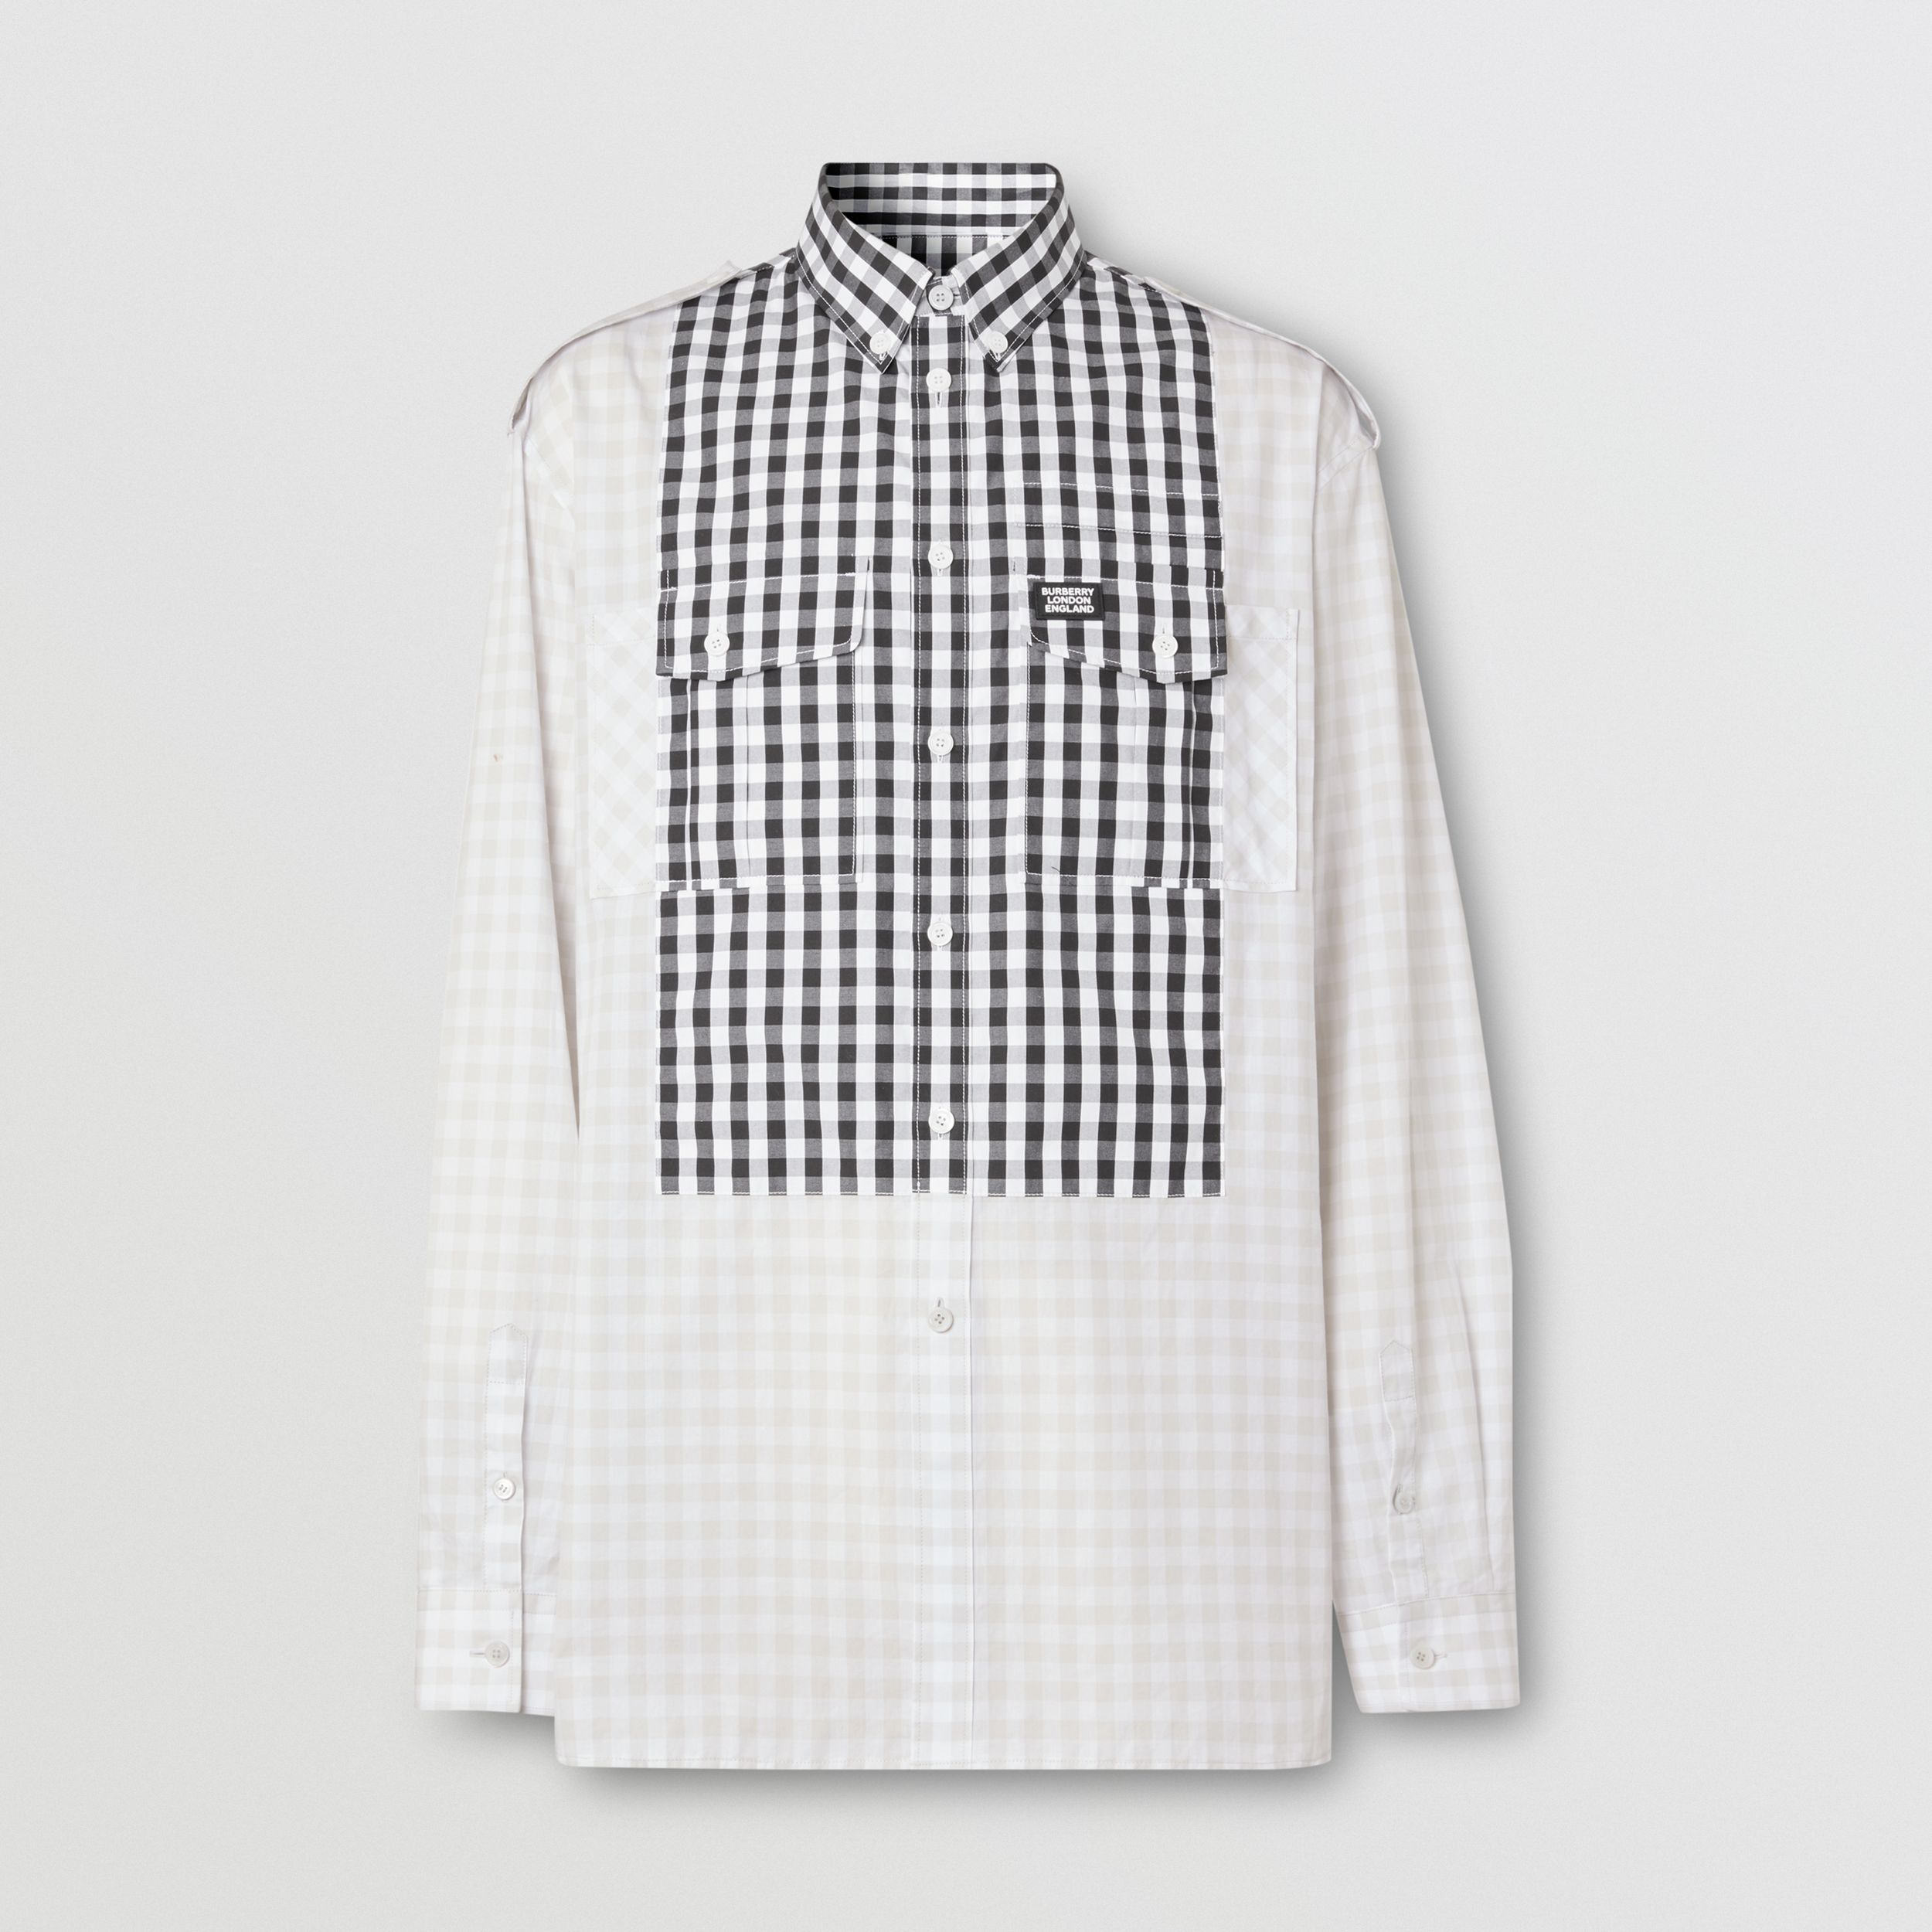 Contrast Bib Gingham Cotton Poplin Oversized Shirt in Light Pebble Grey - Men | Burberry Canada - 4